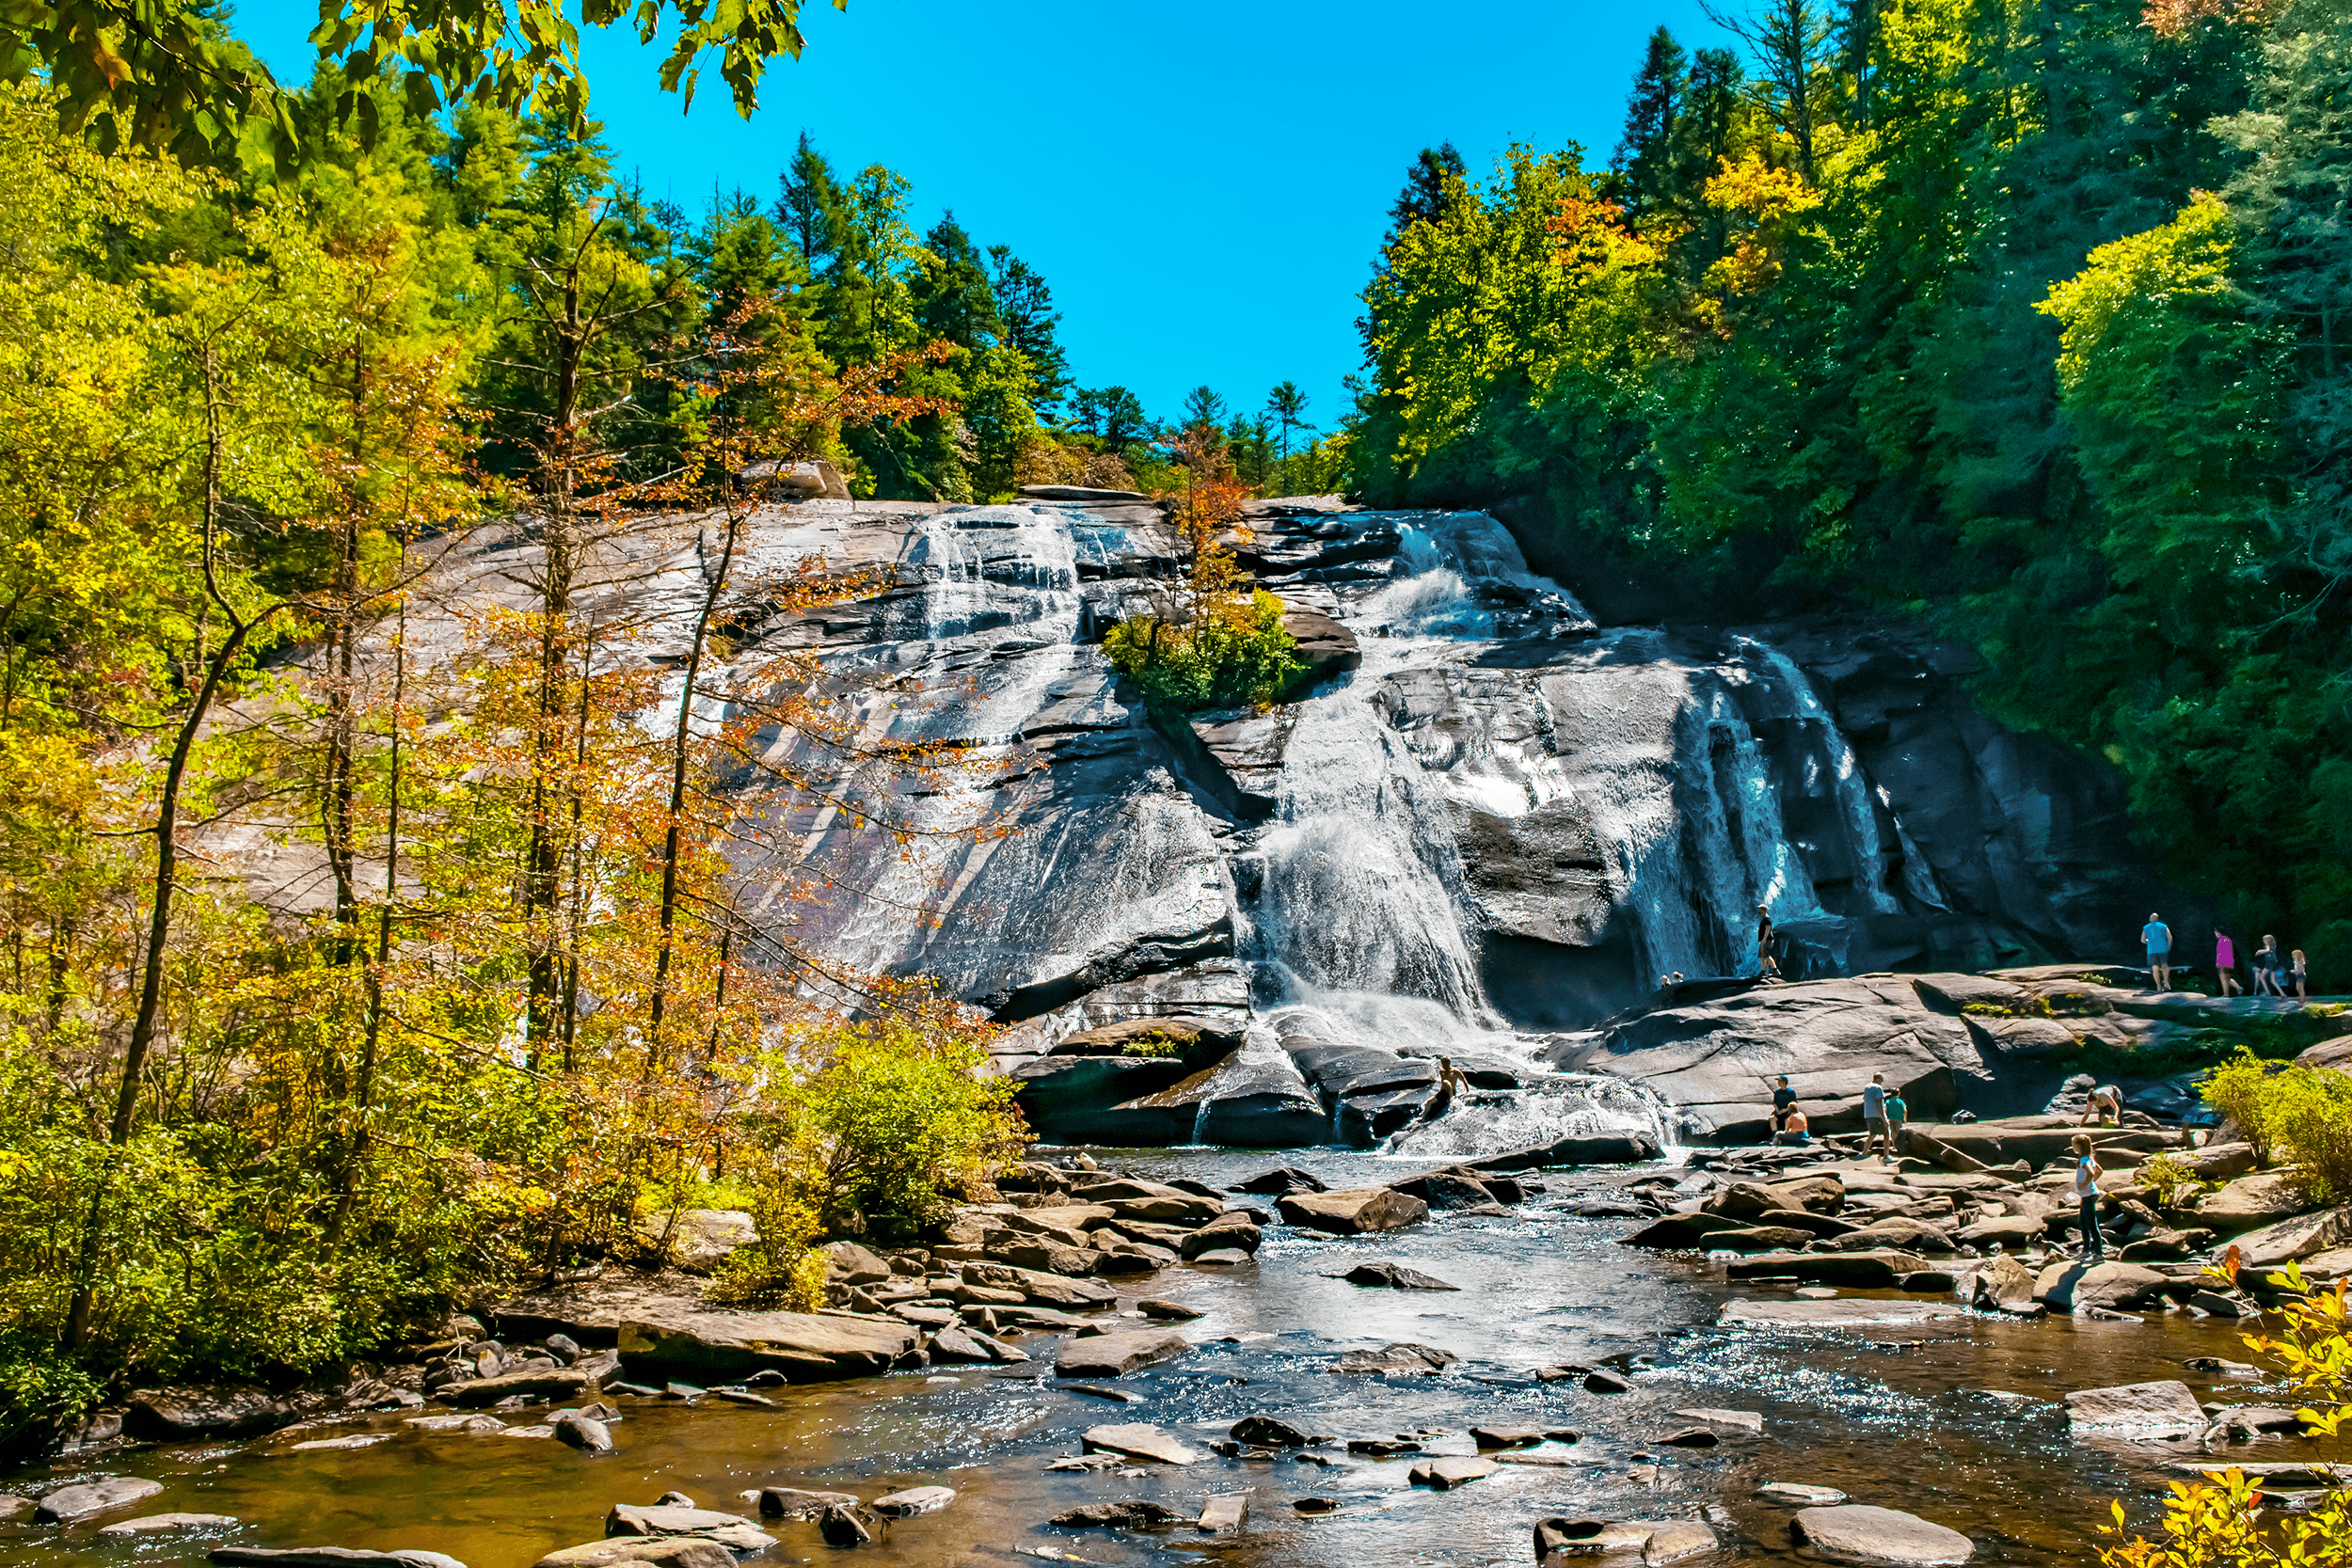 A view from the bottom of  High Falls . On a warm day, it's the perfect place to sit back on one of the large boulders at the base and listen to the roar of the water. In a series of short falls and long cascades, the water drops around 100 feet.